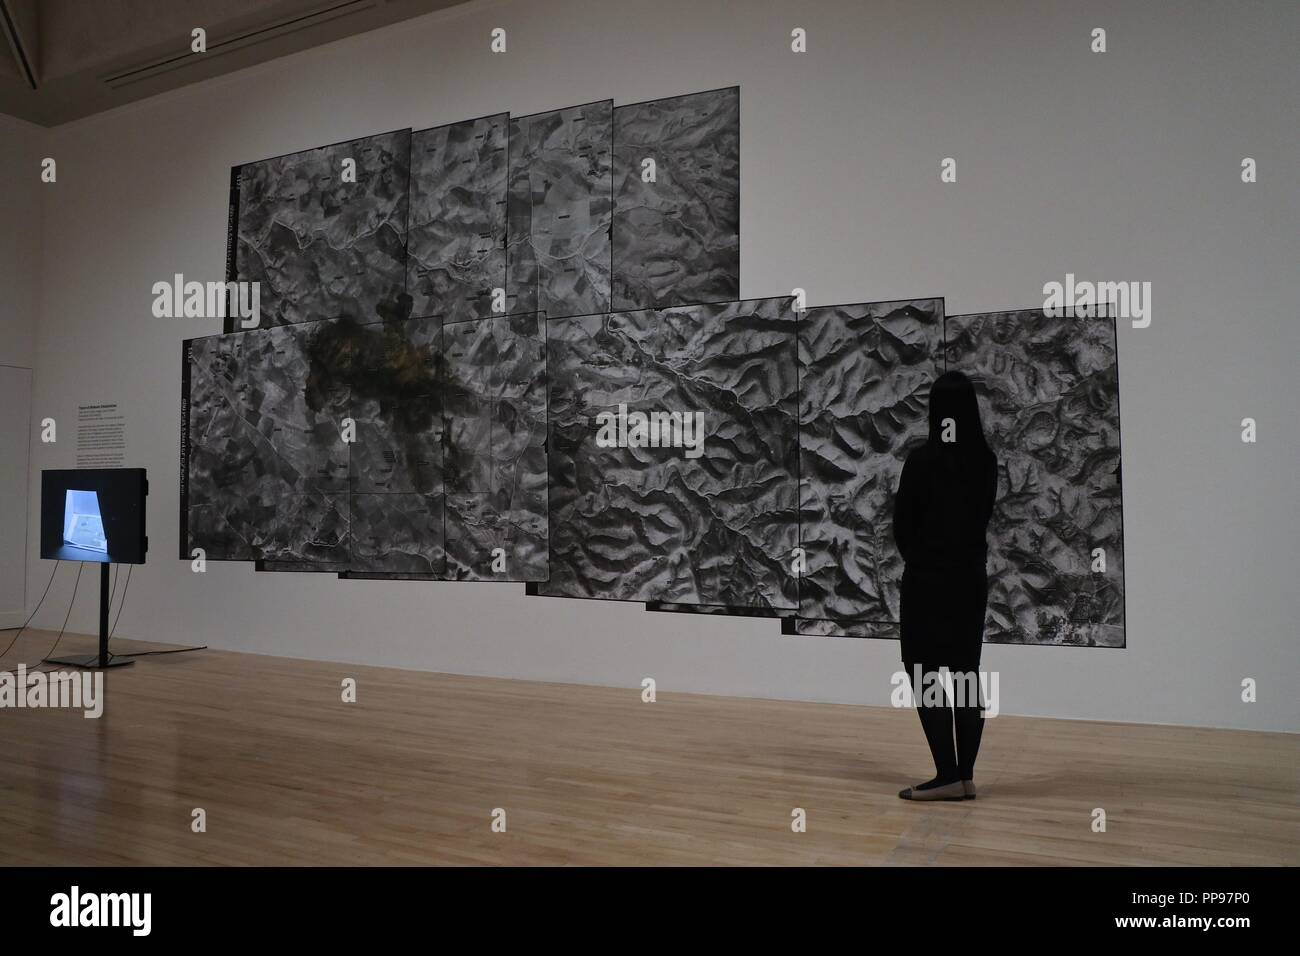 Tate Britain Turner Prize Shortlisted Artists 1984-2018 - Stock Image